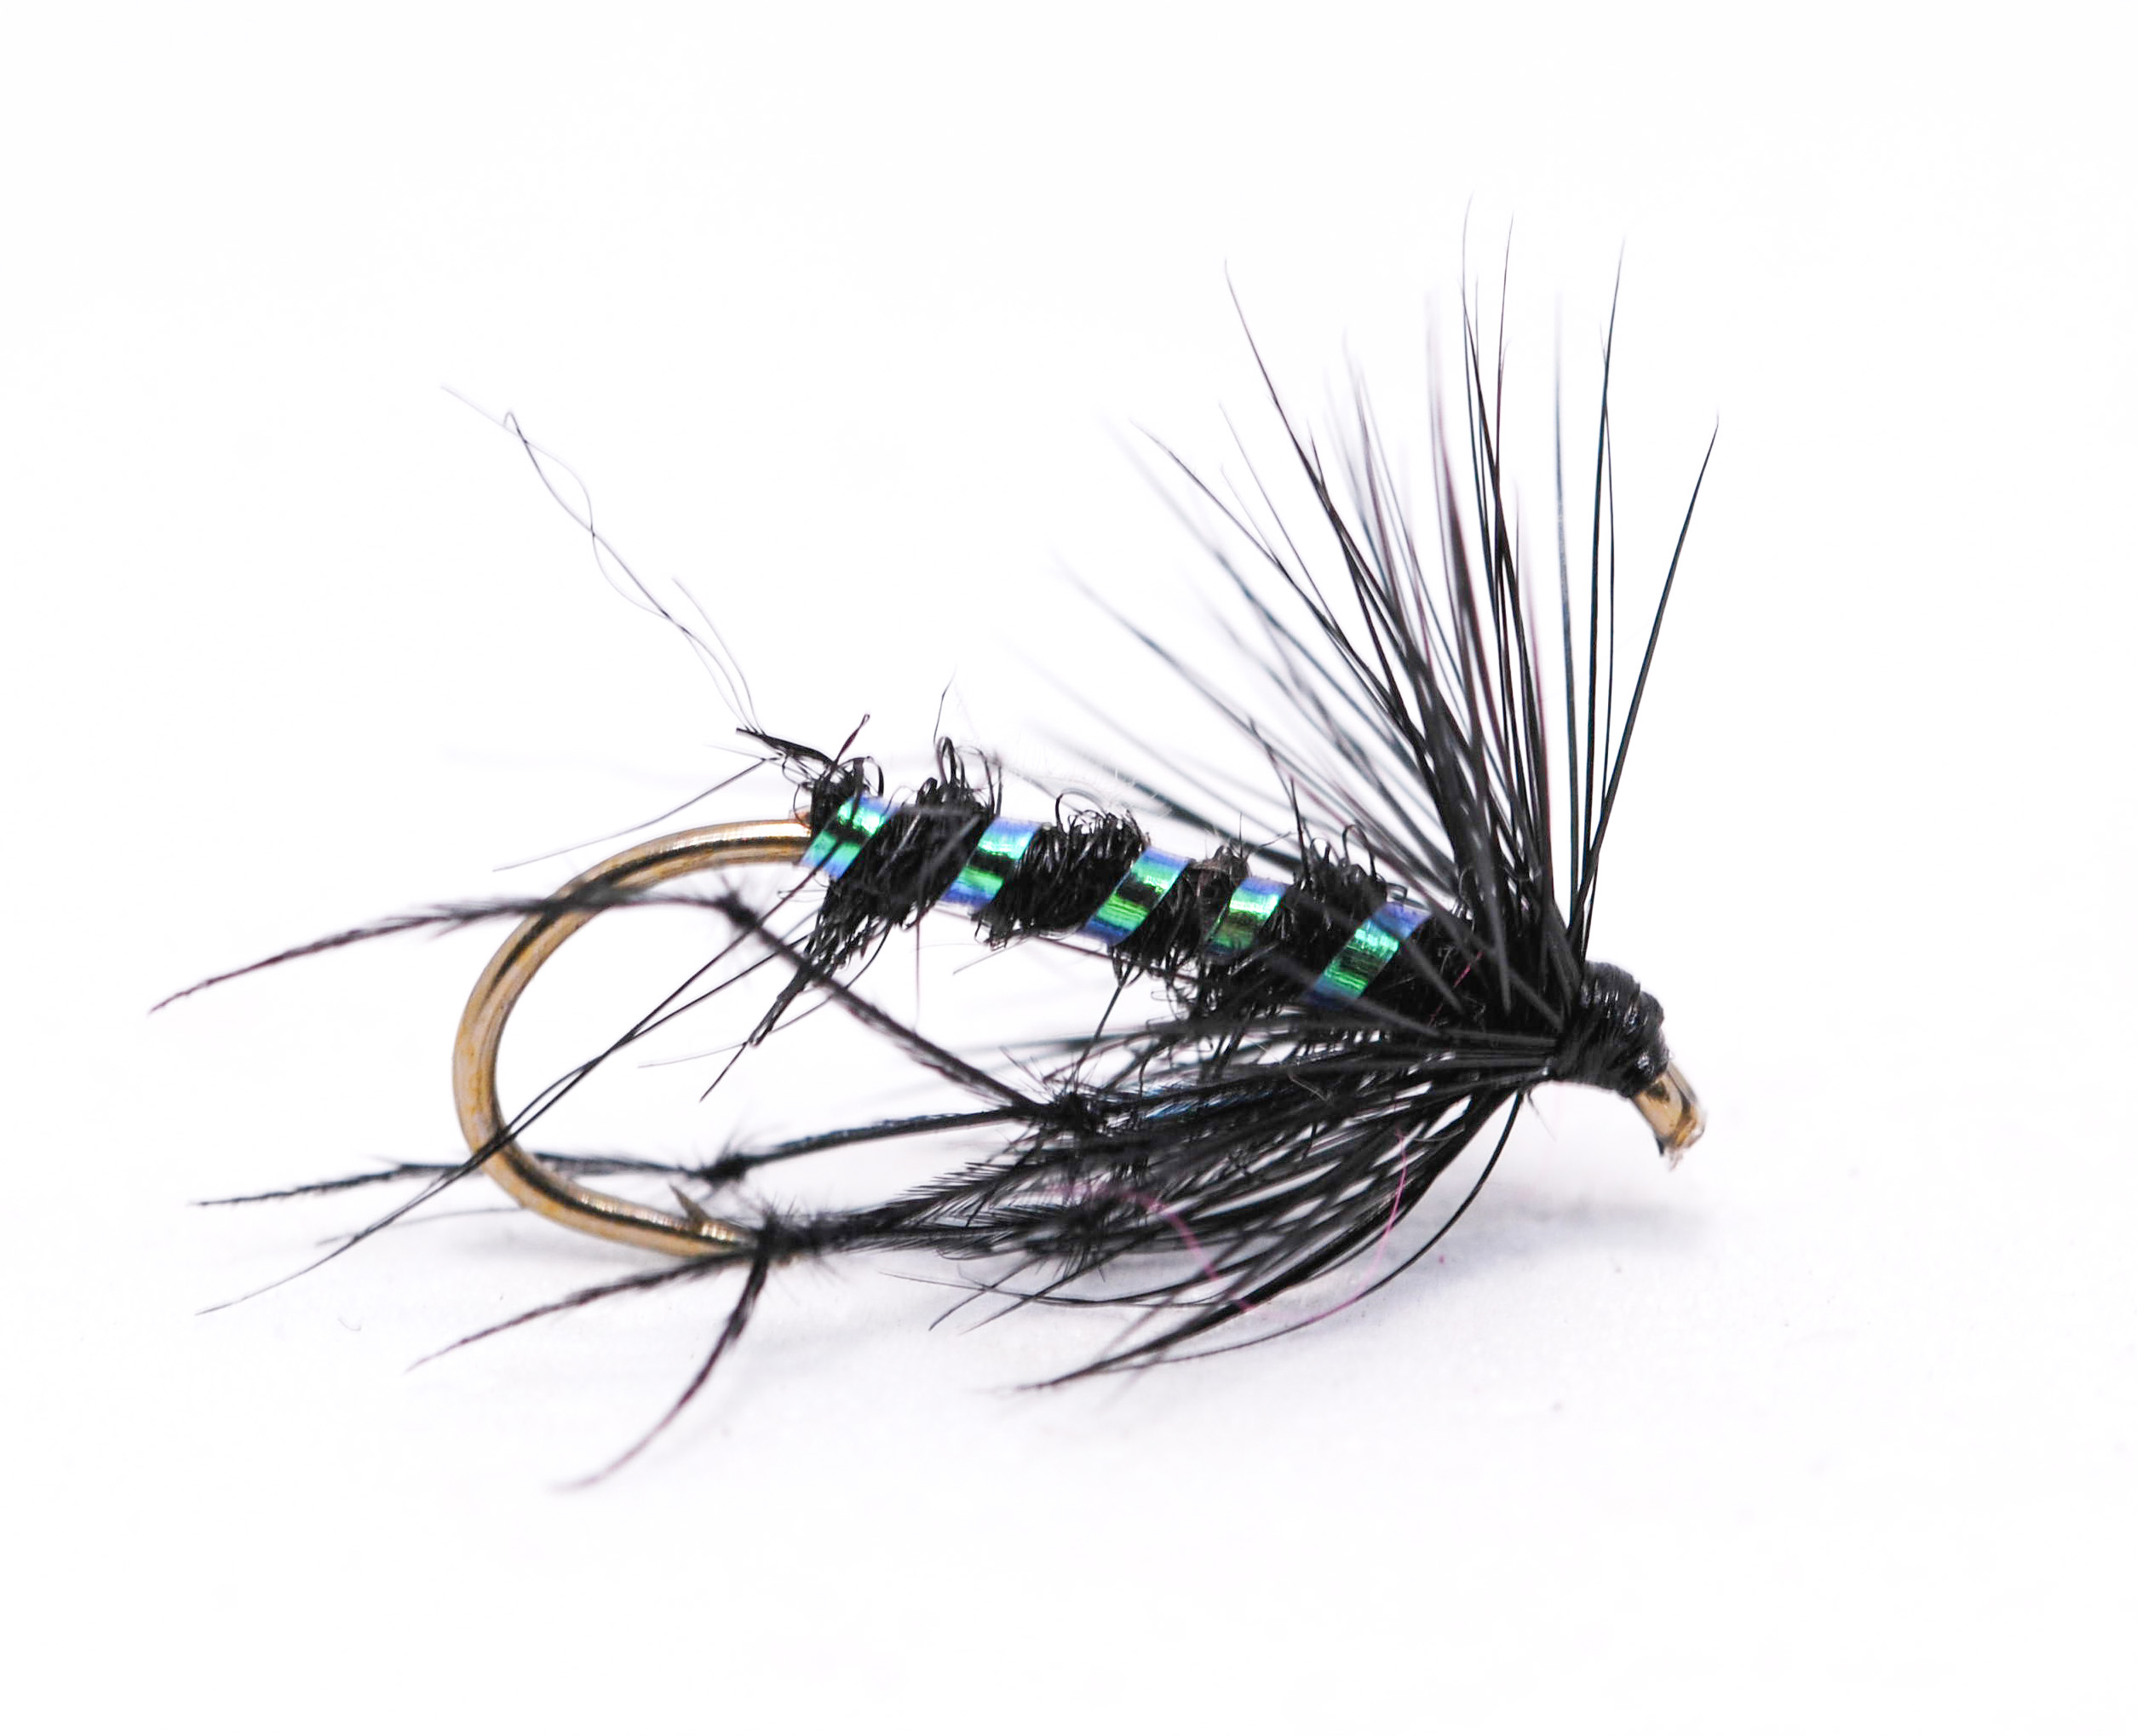 Black Hopper Was One Of The First Dry Flies I Used From A